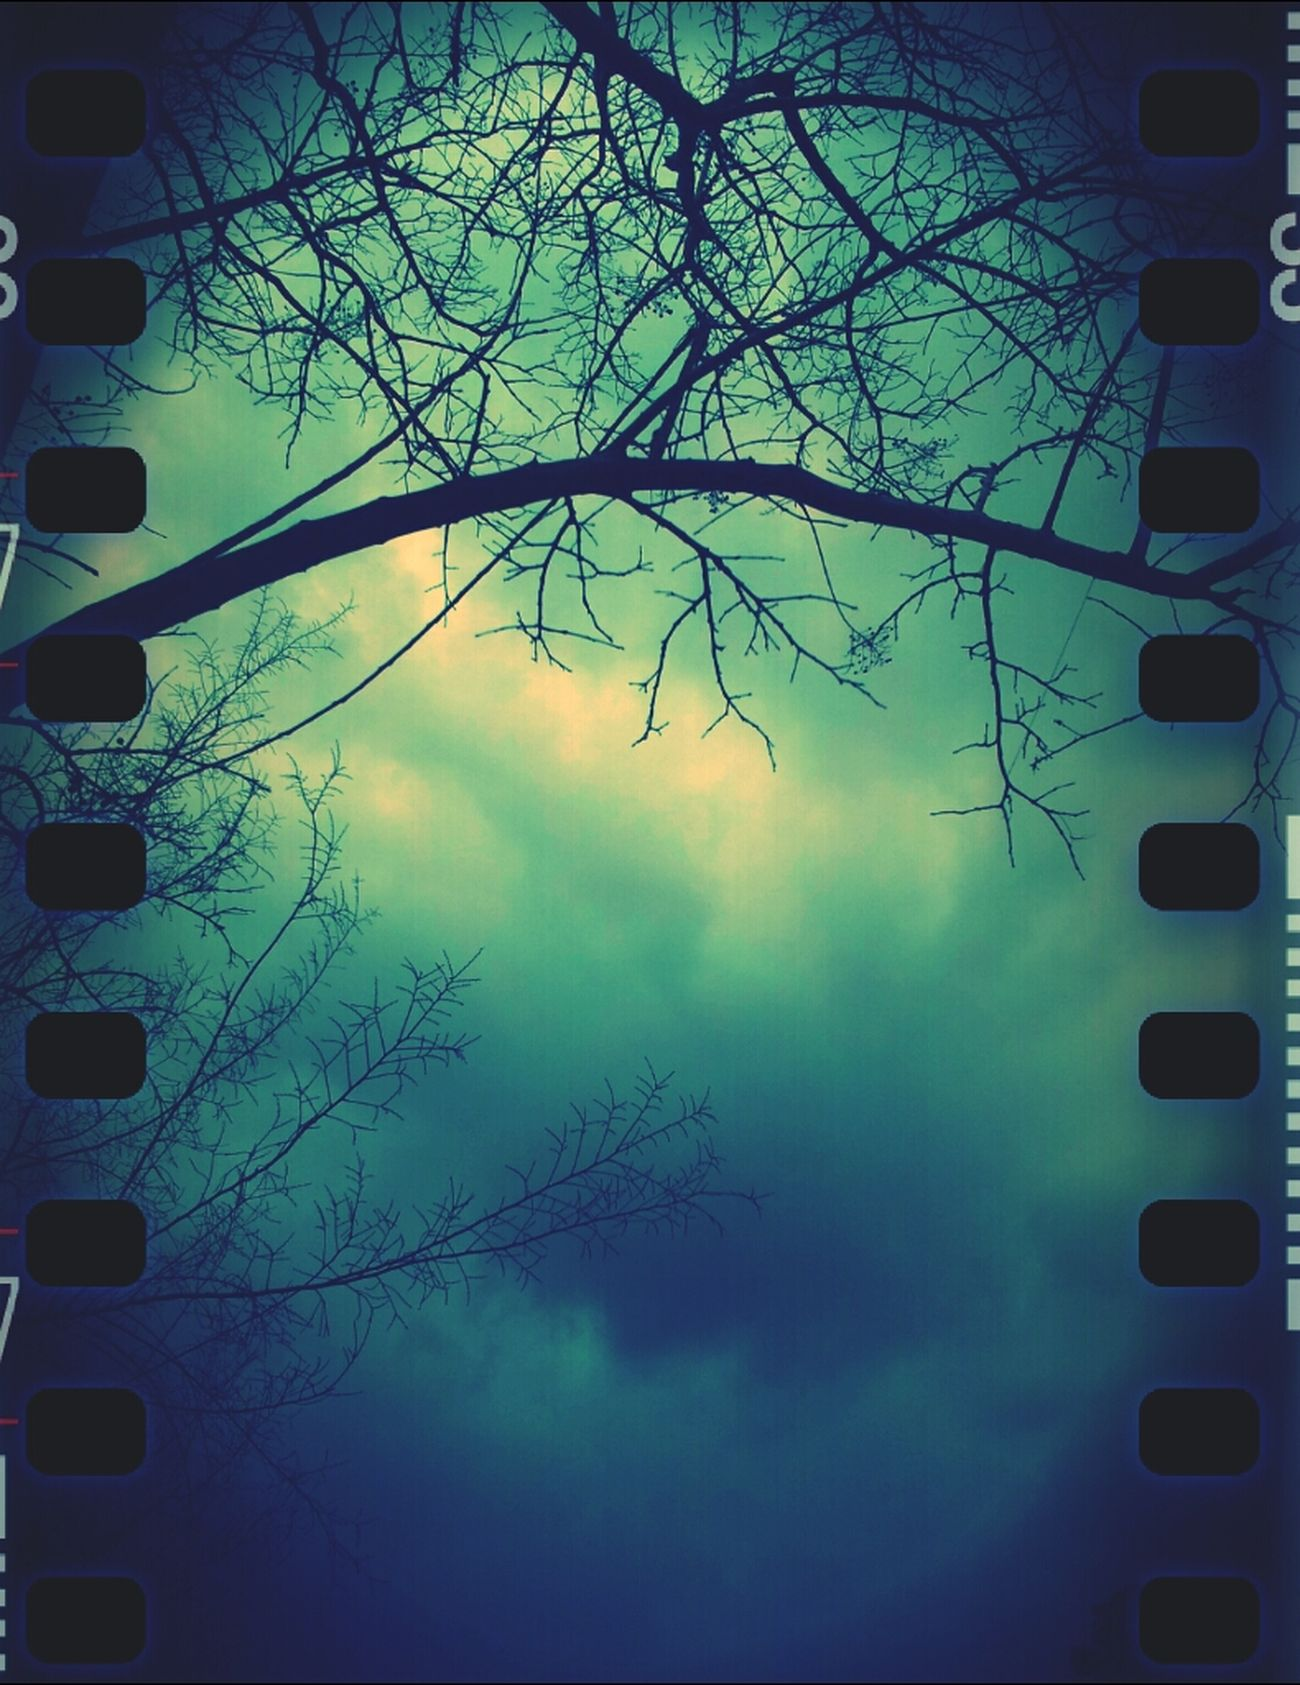 Sky Trees Taking Photos Winter Blue Cloud Storm Photography Outdoors Branches Cold Days Today's Weather Report Jus Because